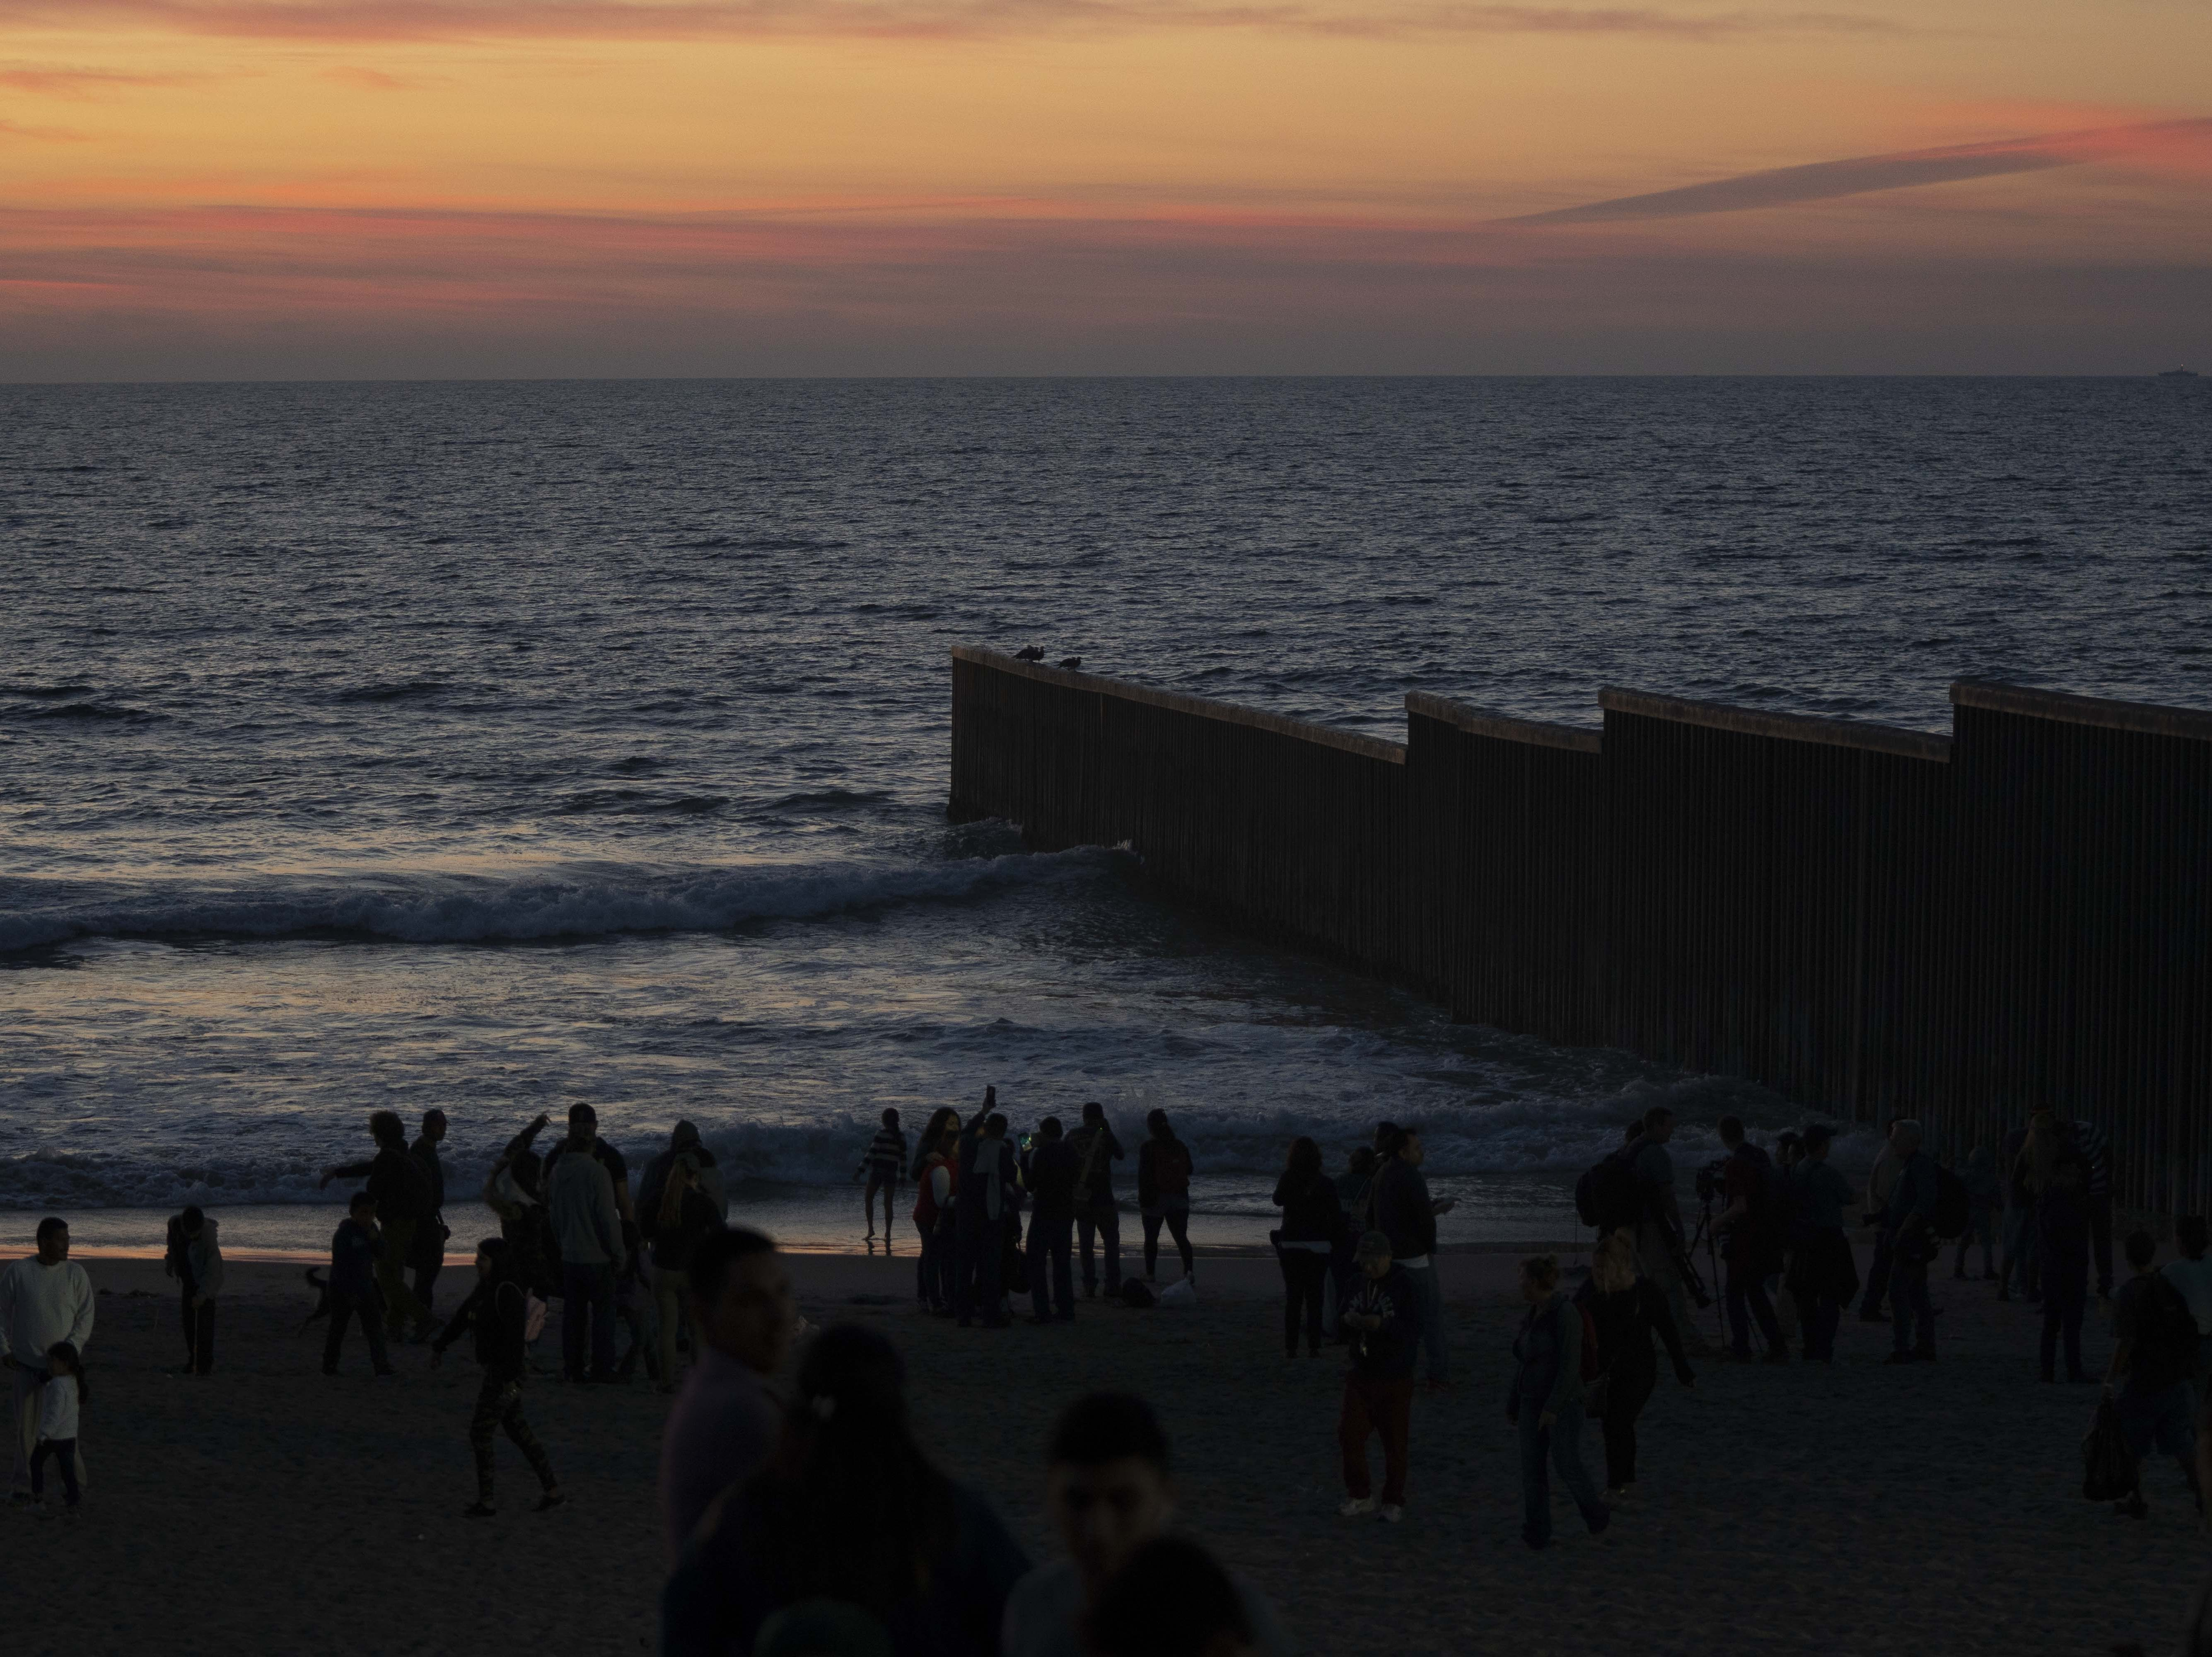 The barbed wire perched atop the US-Mexico border fence on Nov. 18, 2018, has become a viewing attraction for visitors to the popular Playas de Tijuana neighborhood south of San Diego.